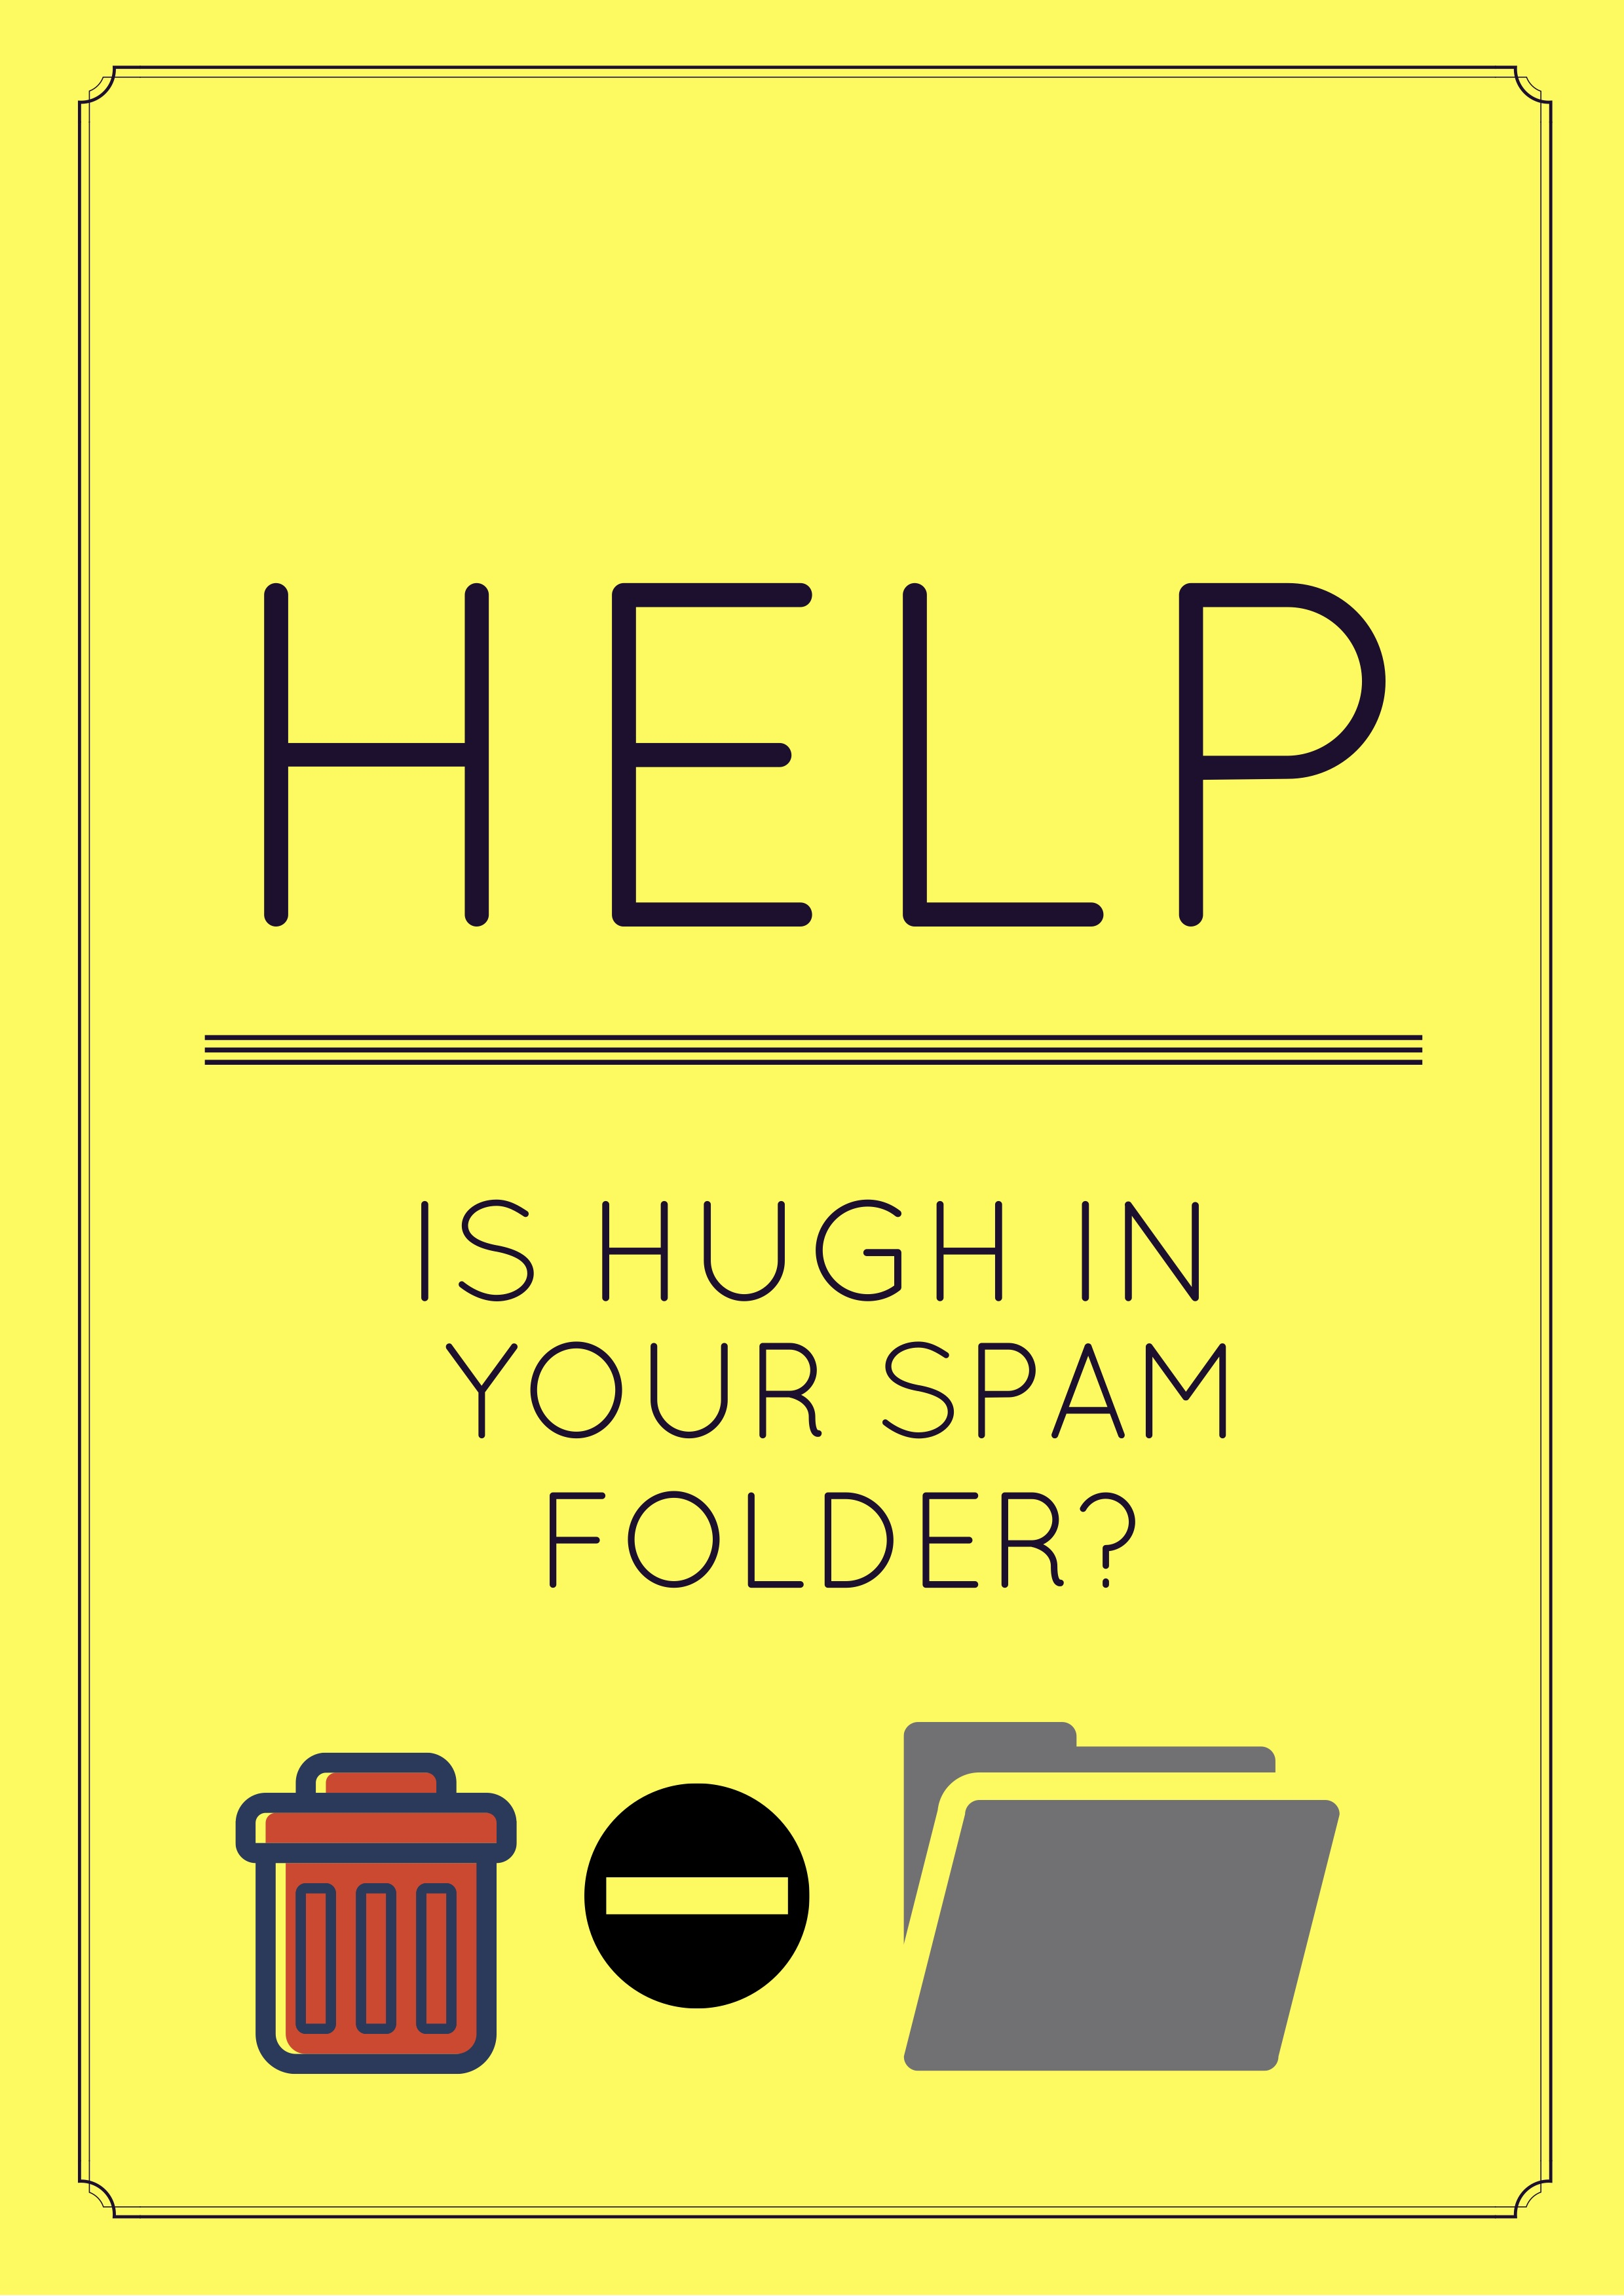 how to find spam folder